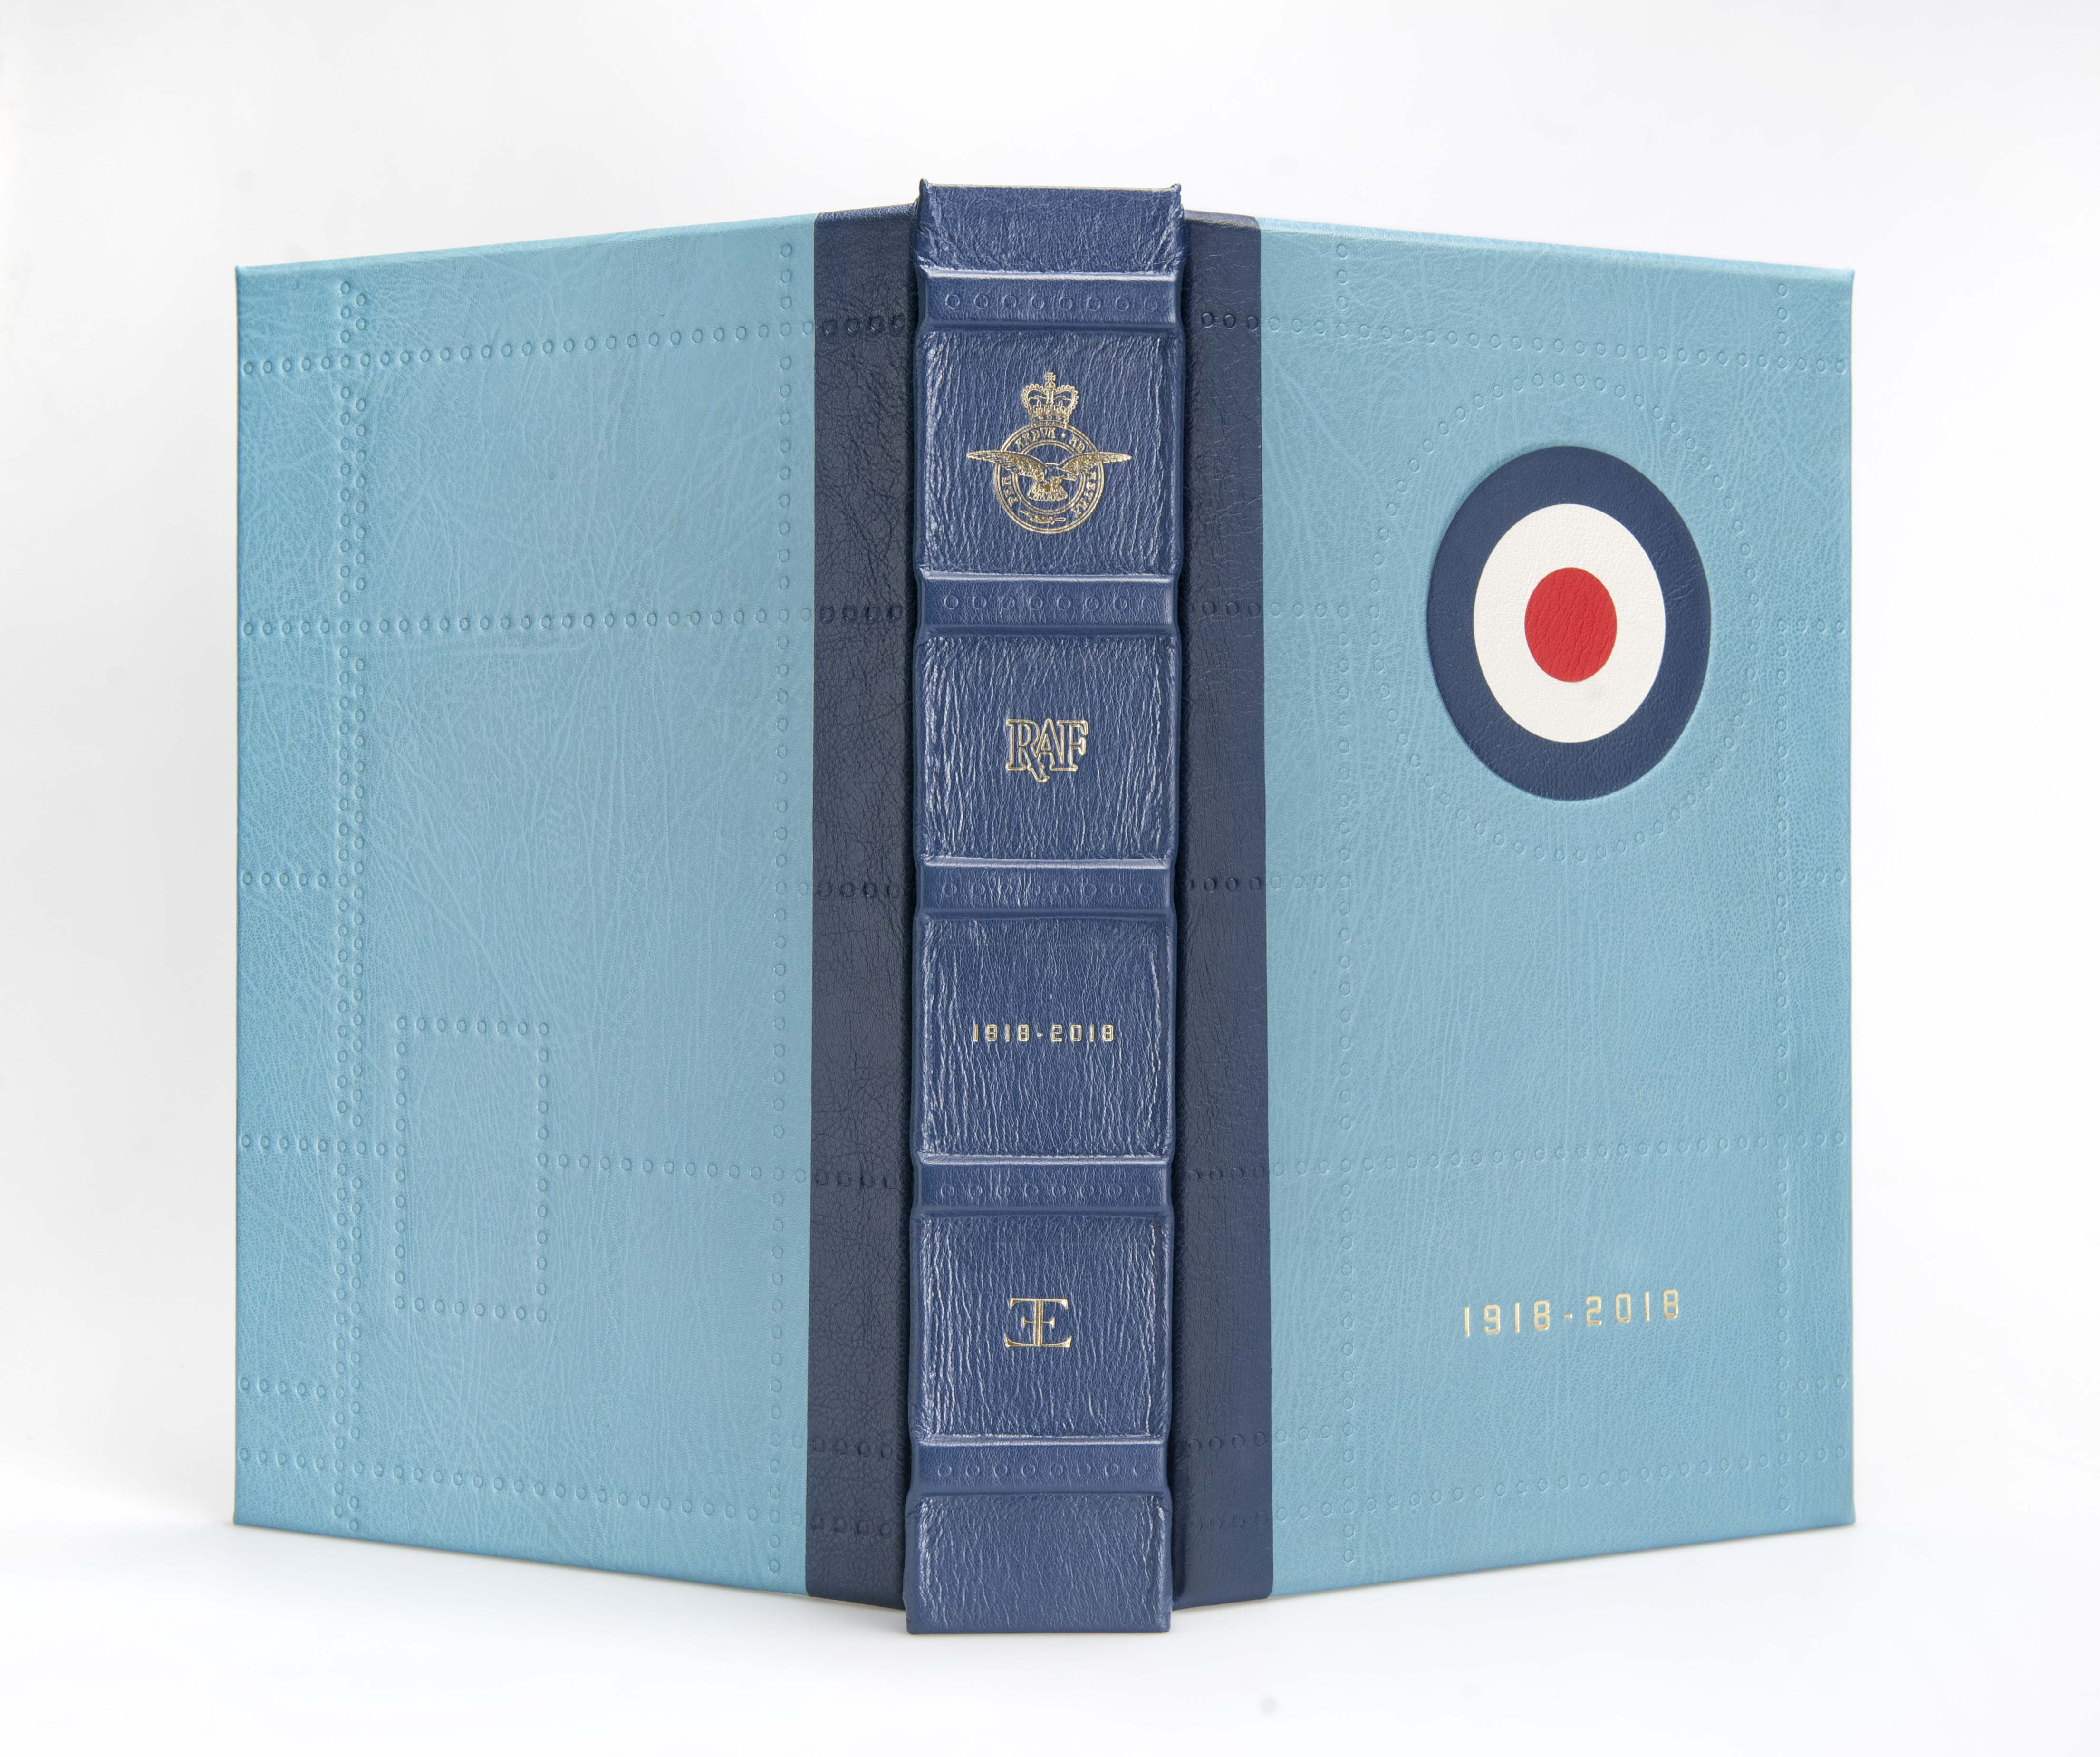 the raf commemorative anthology consists of at nearly 700 pages of  documents, orders, operational reports, maps, air diagrams, diaries,  letters and ephemera